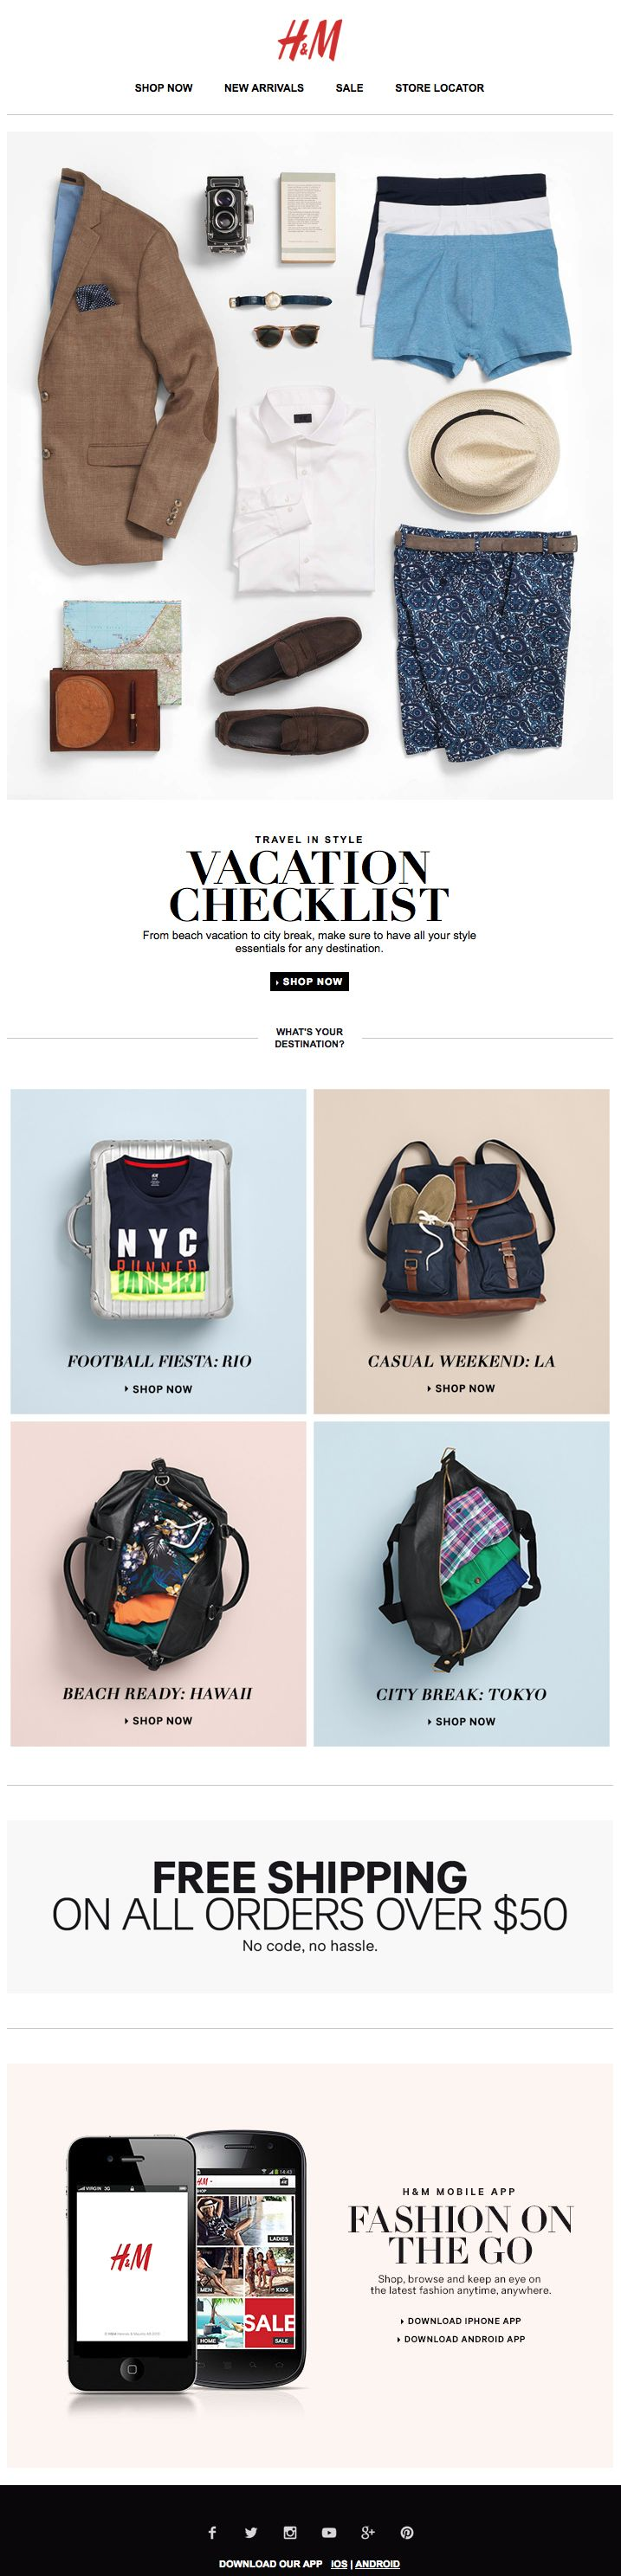 """""""H&M : Packing List + Destination"""" interesting concept and layout"""